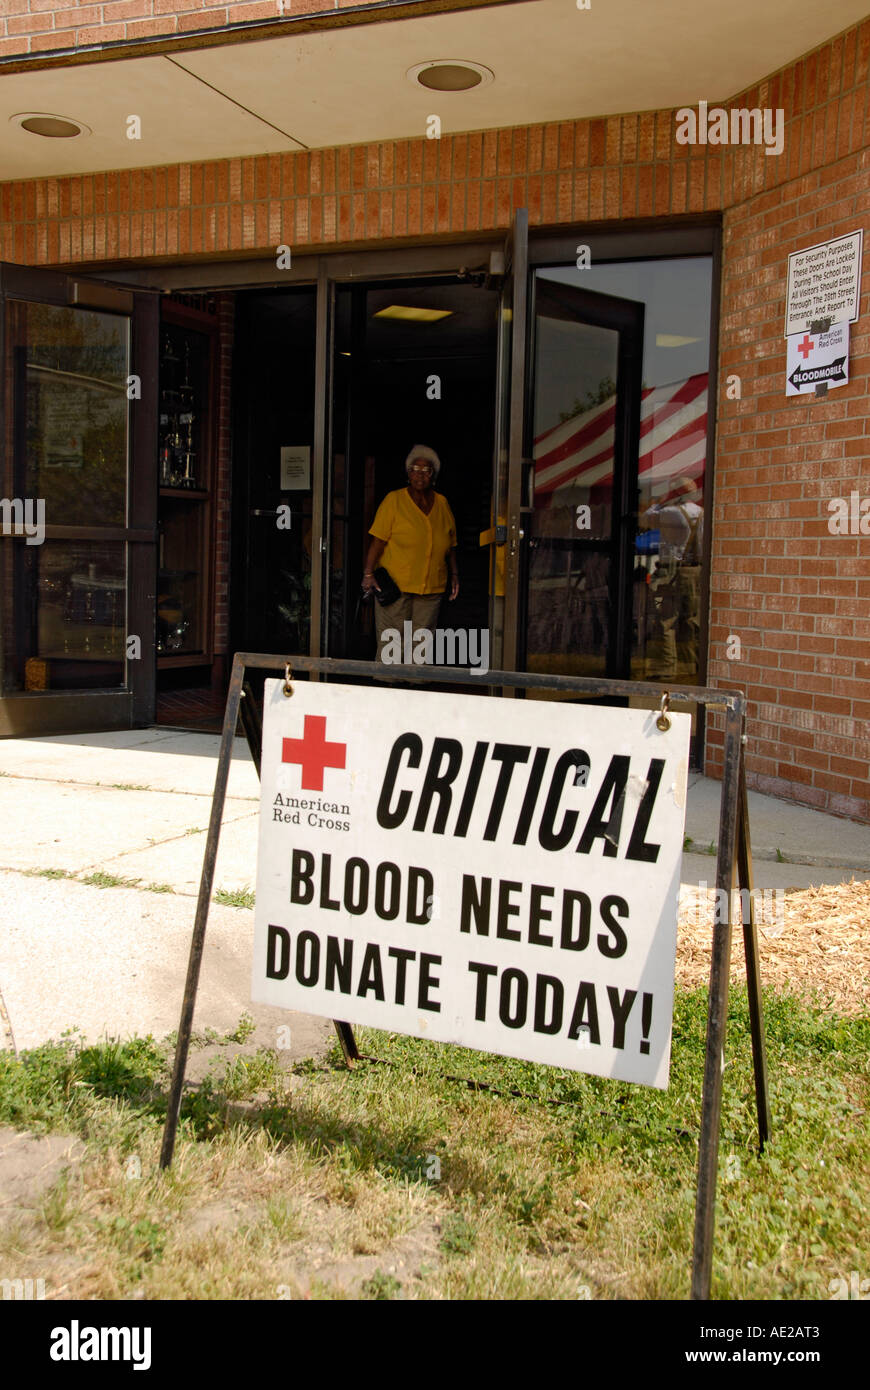 Red Cross conducts a critical need for blood drive - Stock Image